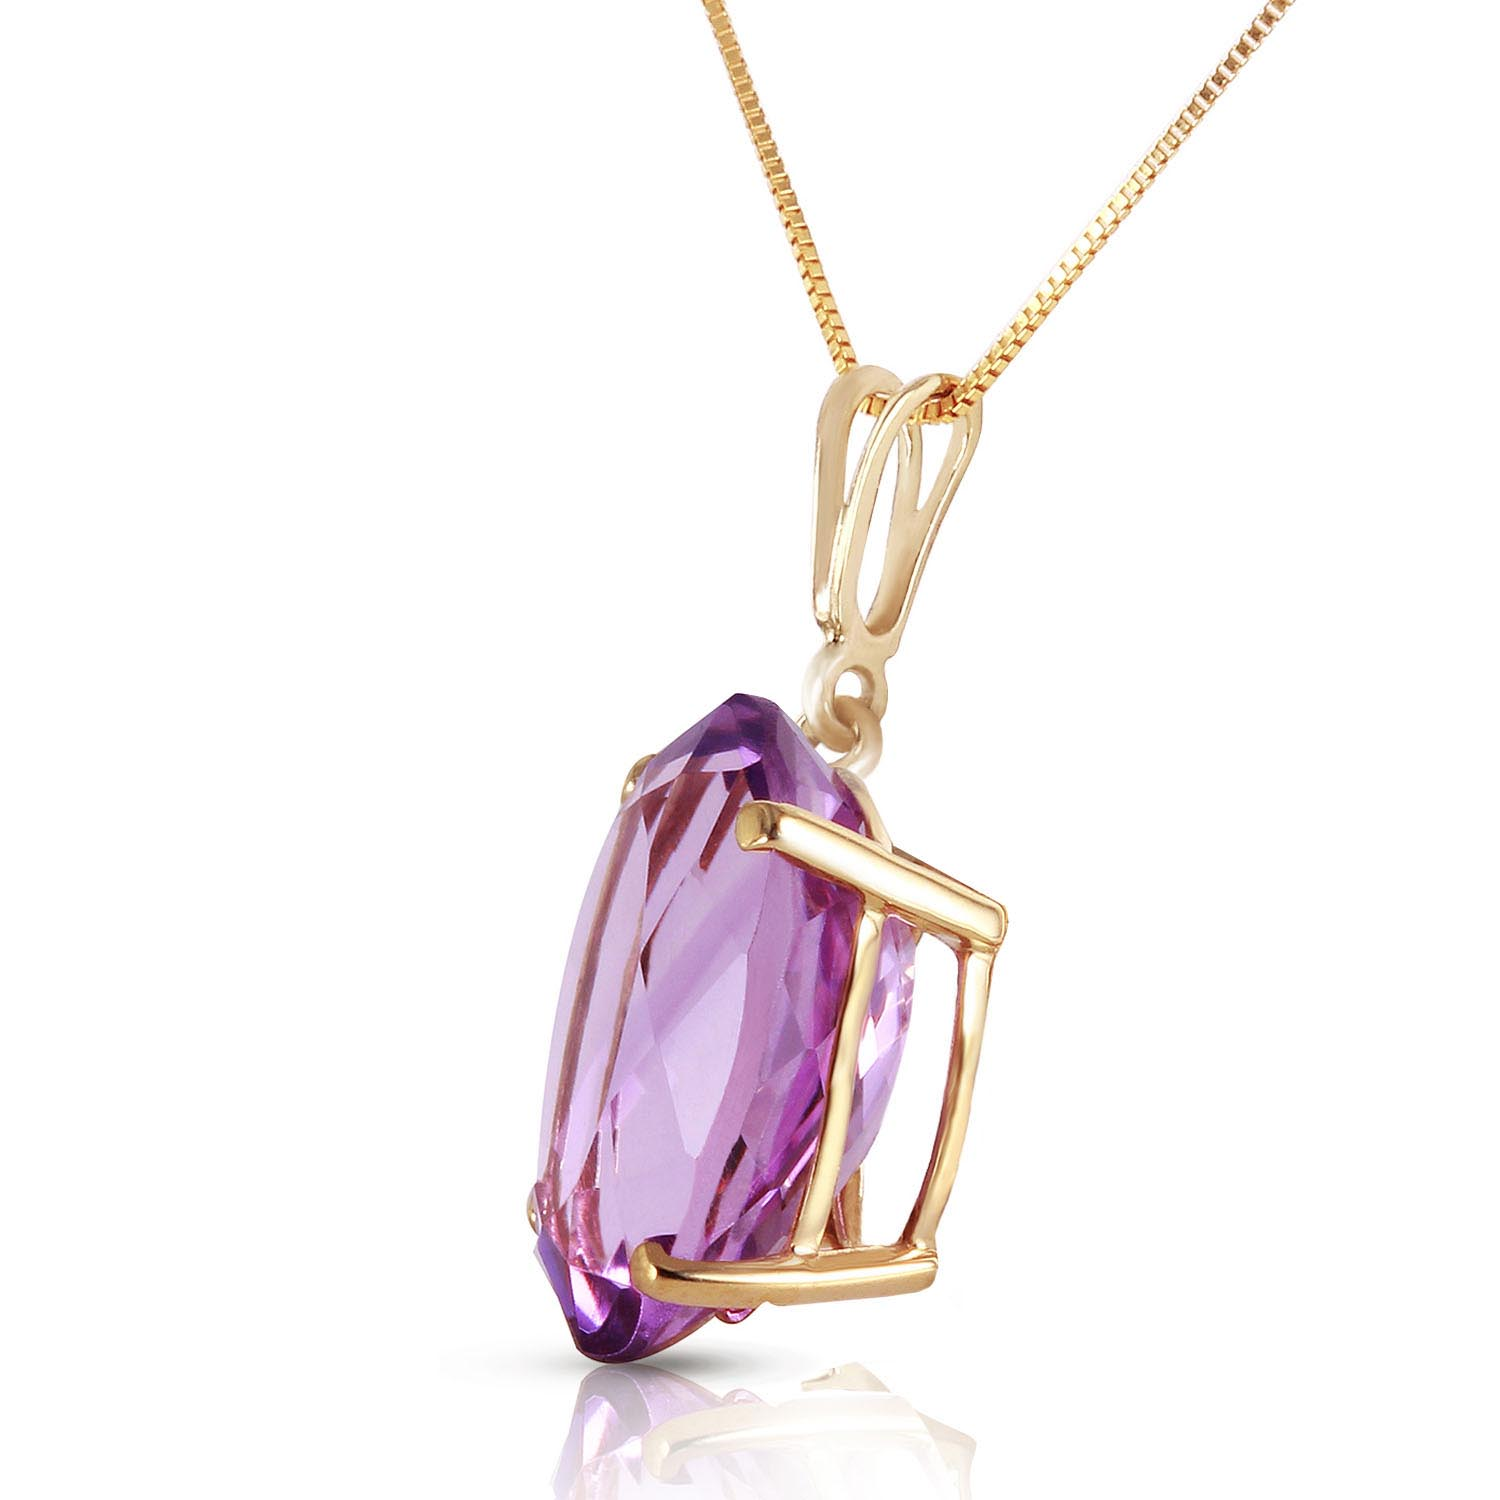 Oval Cut Amethyst Pendant Necklace 7.55ct in 9ct Gold